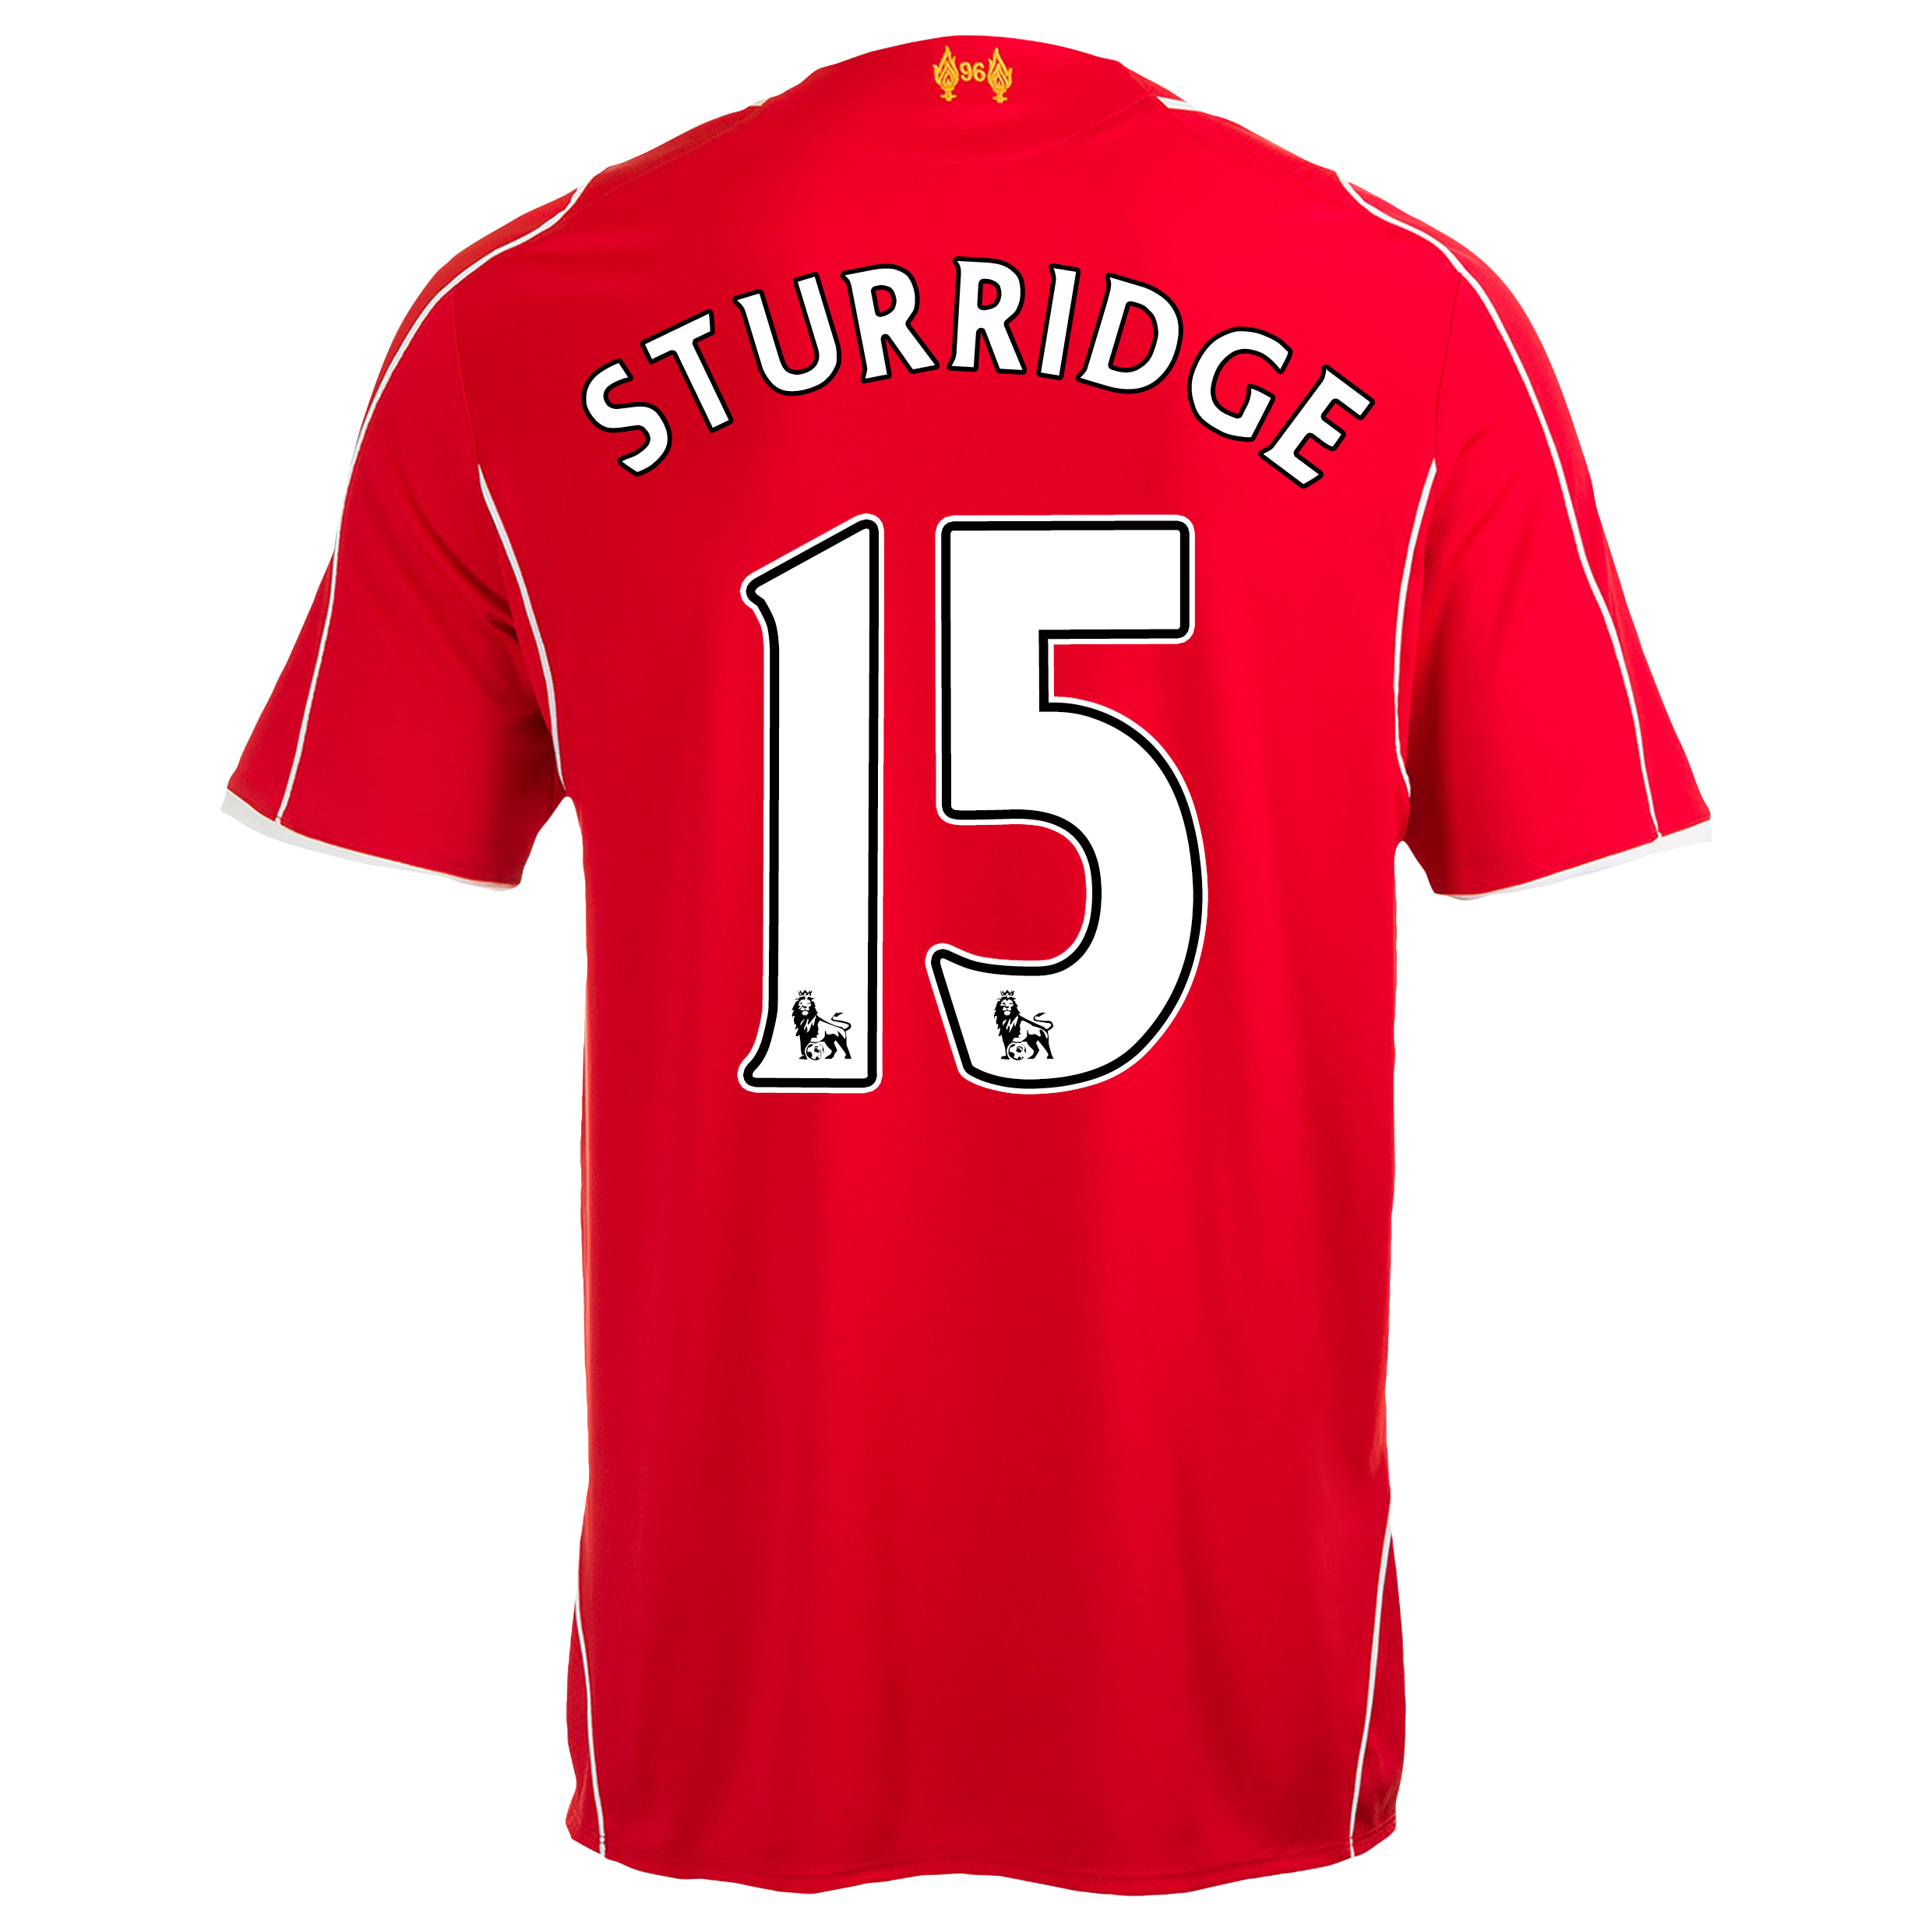 Liverpool Home Shirt 2014/15 Red with Sturridge 15 printing